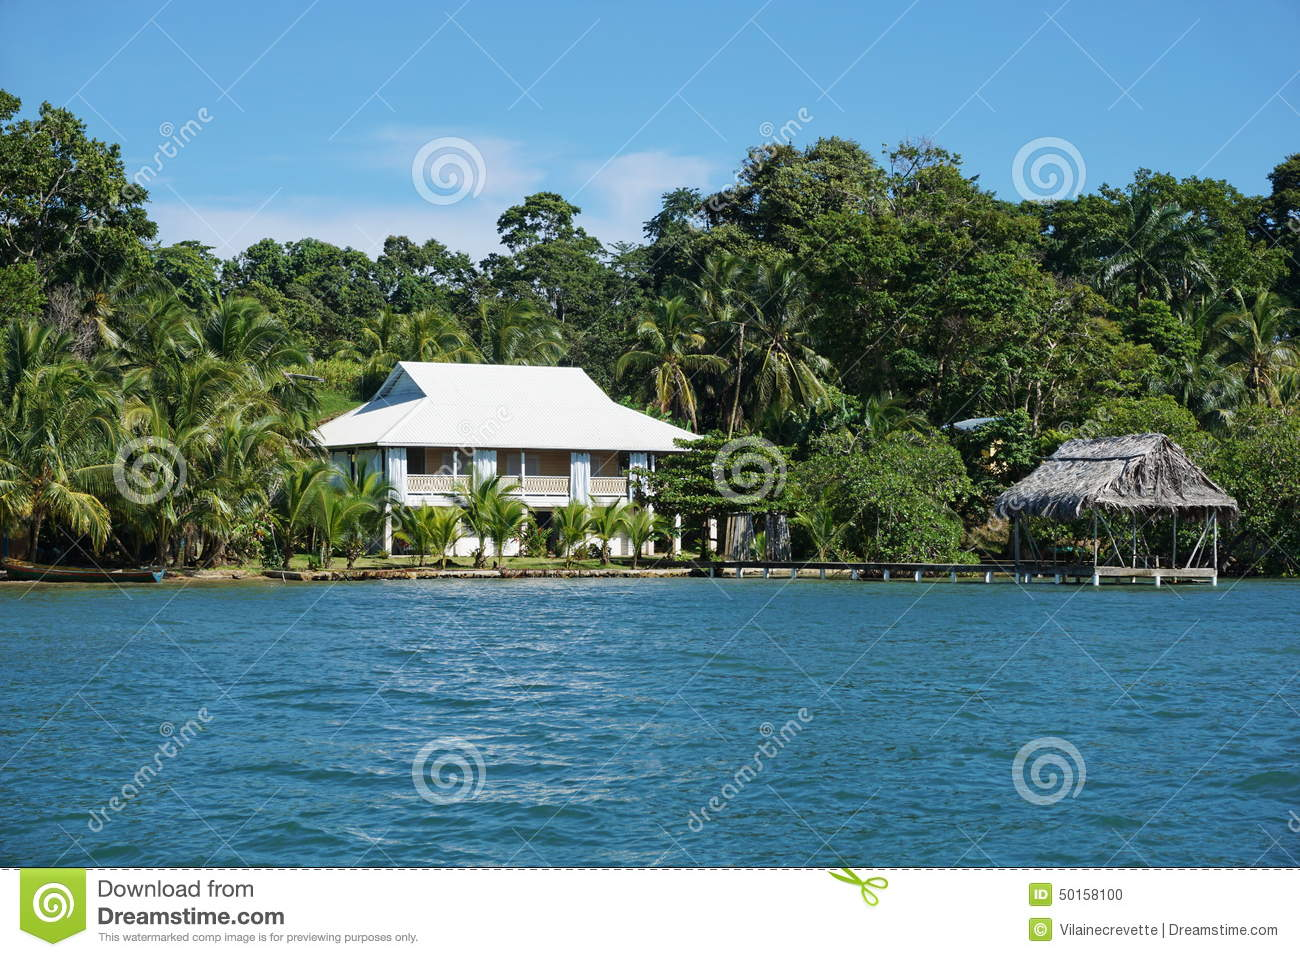 Oceanfront House And Hut Over The Water In Panama Stock Photo Image 50158100